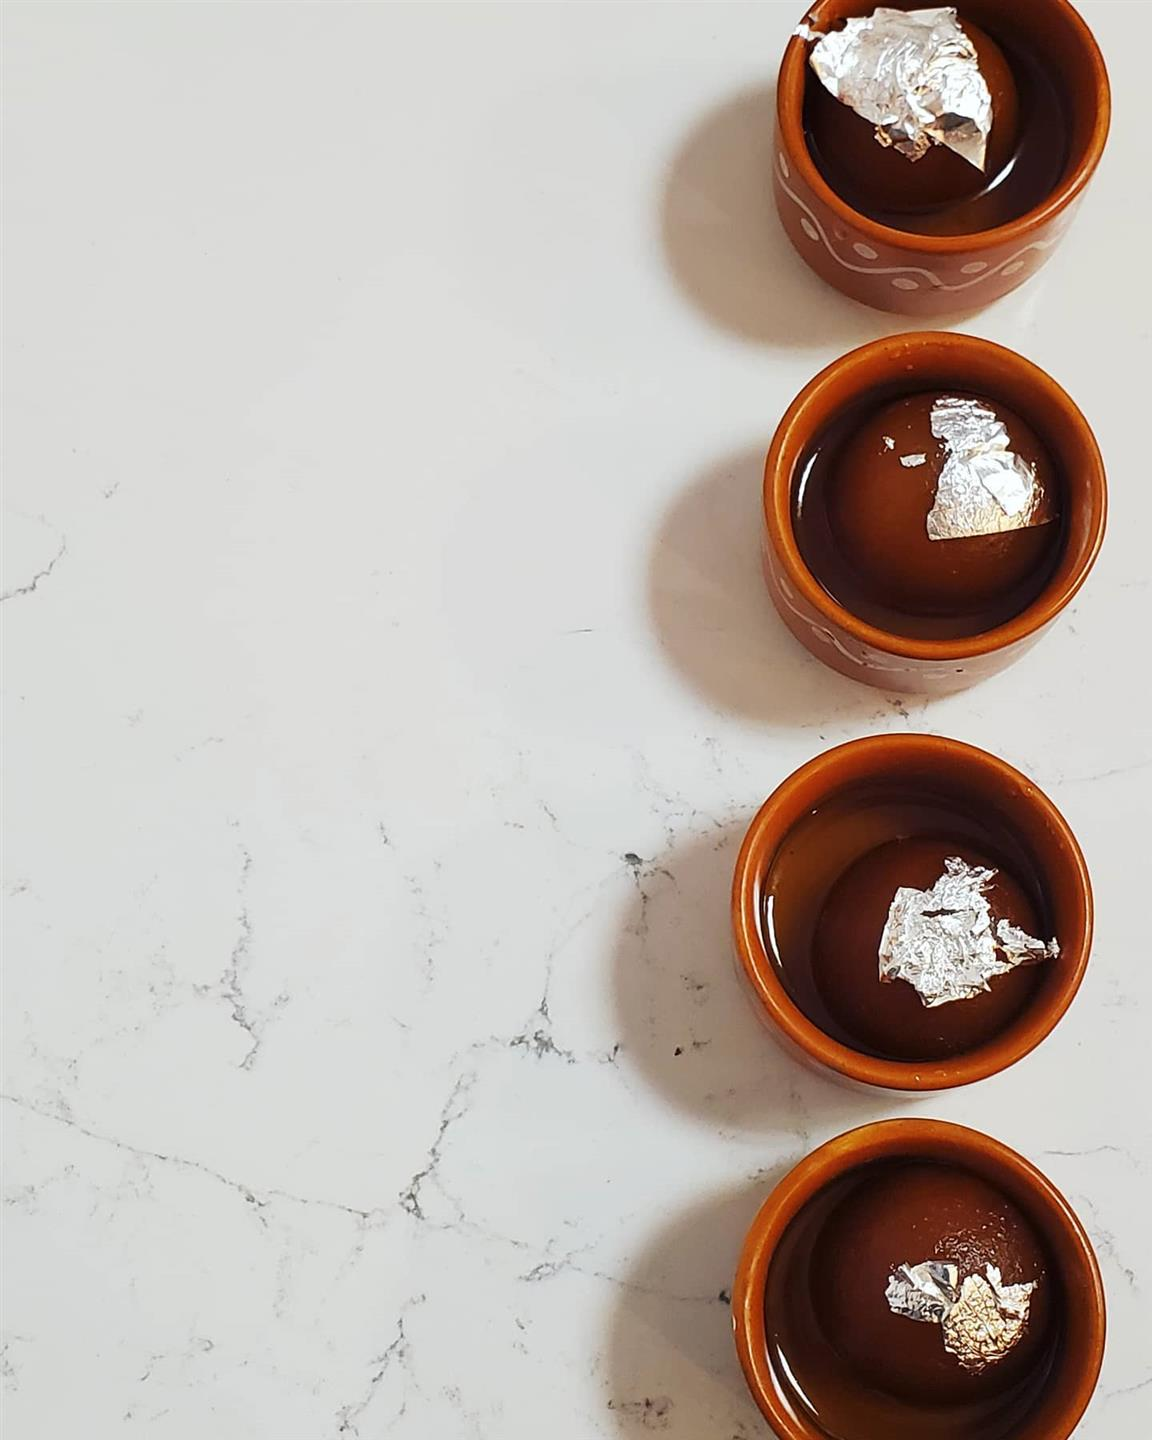 assortment of cups filled with chocolate bombs